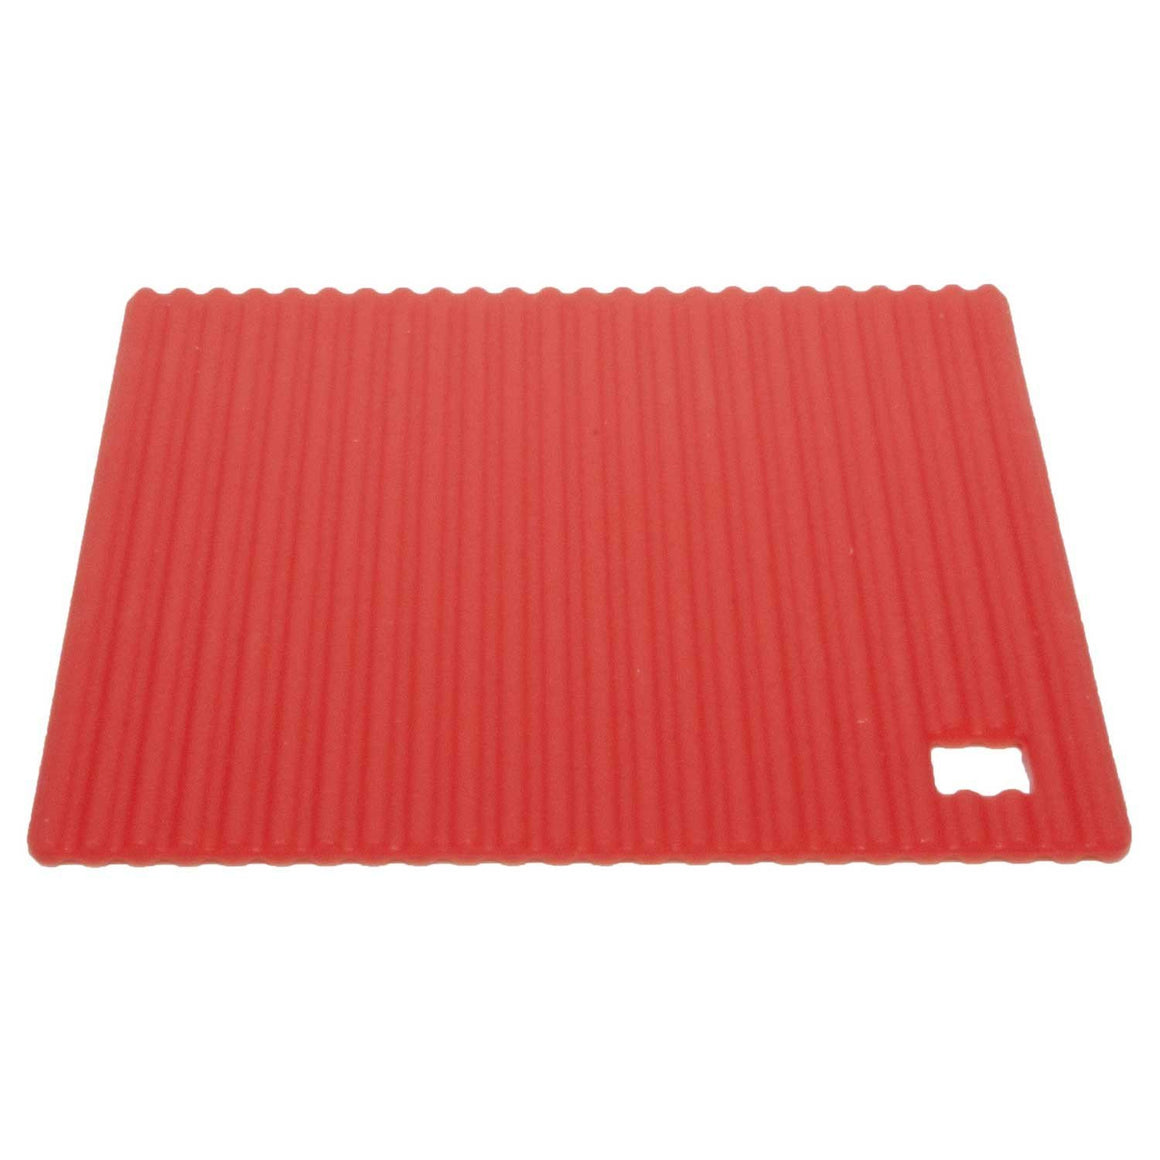 Zeal Originals Silicone Hot Mat Large 22cm Red - stuff-n-things